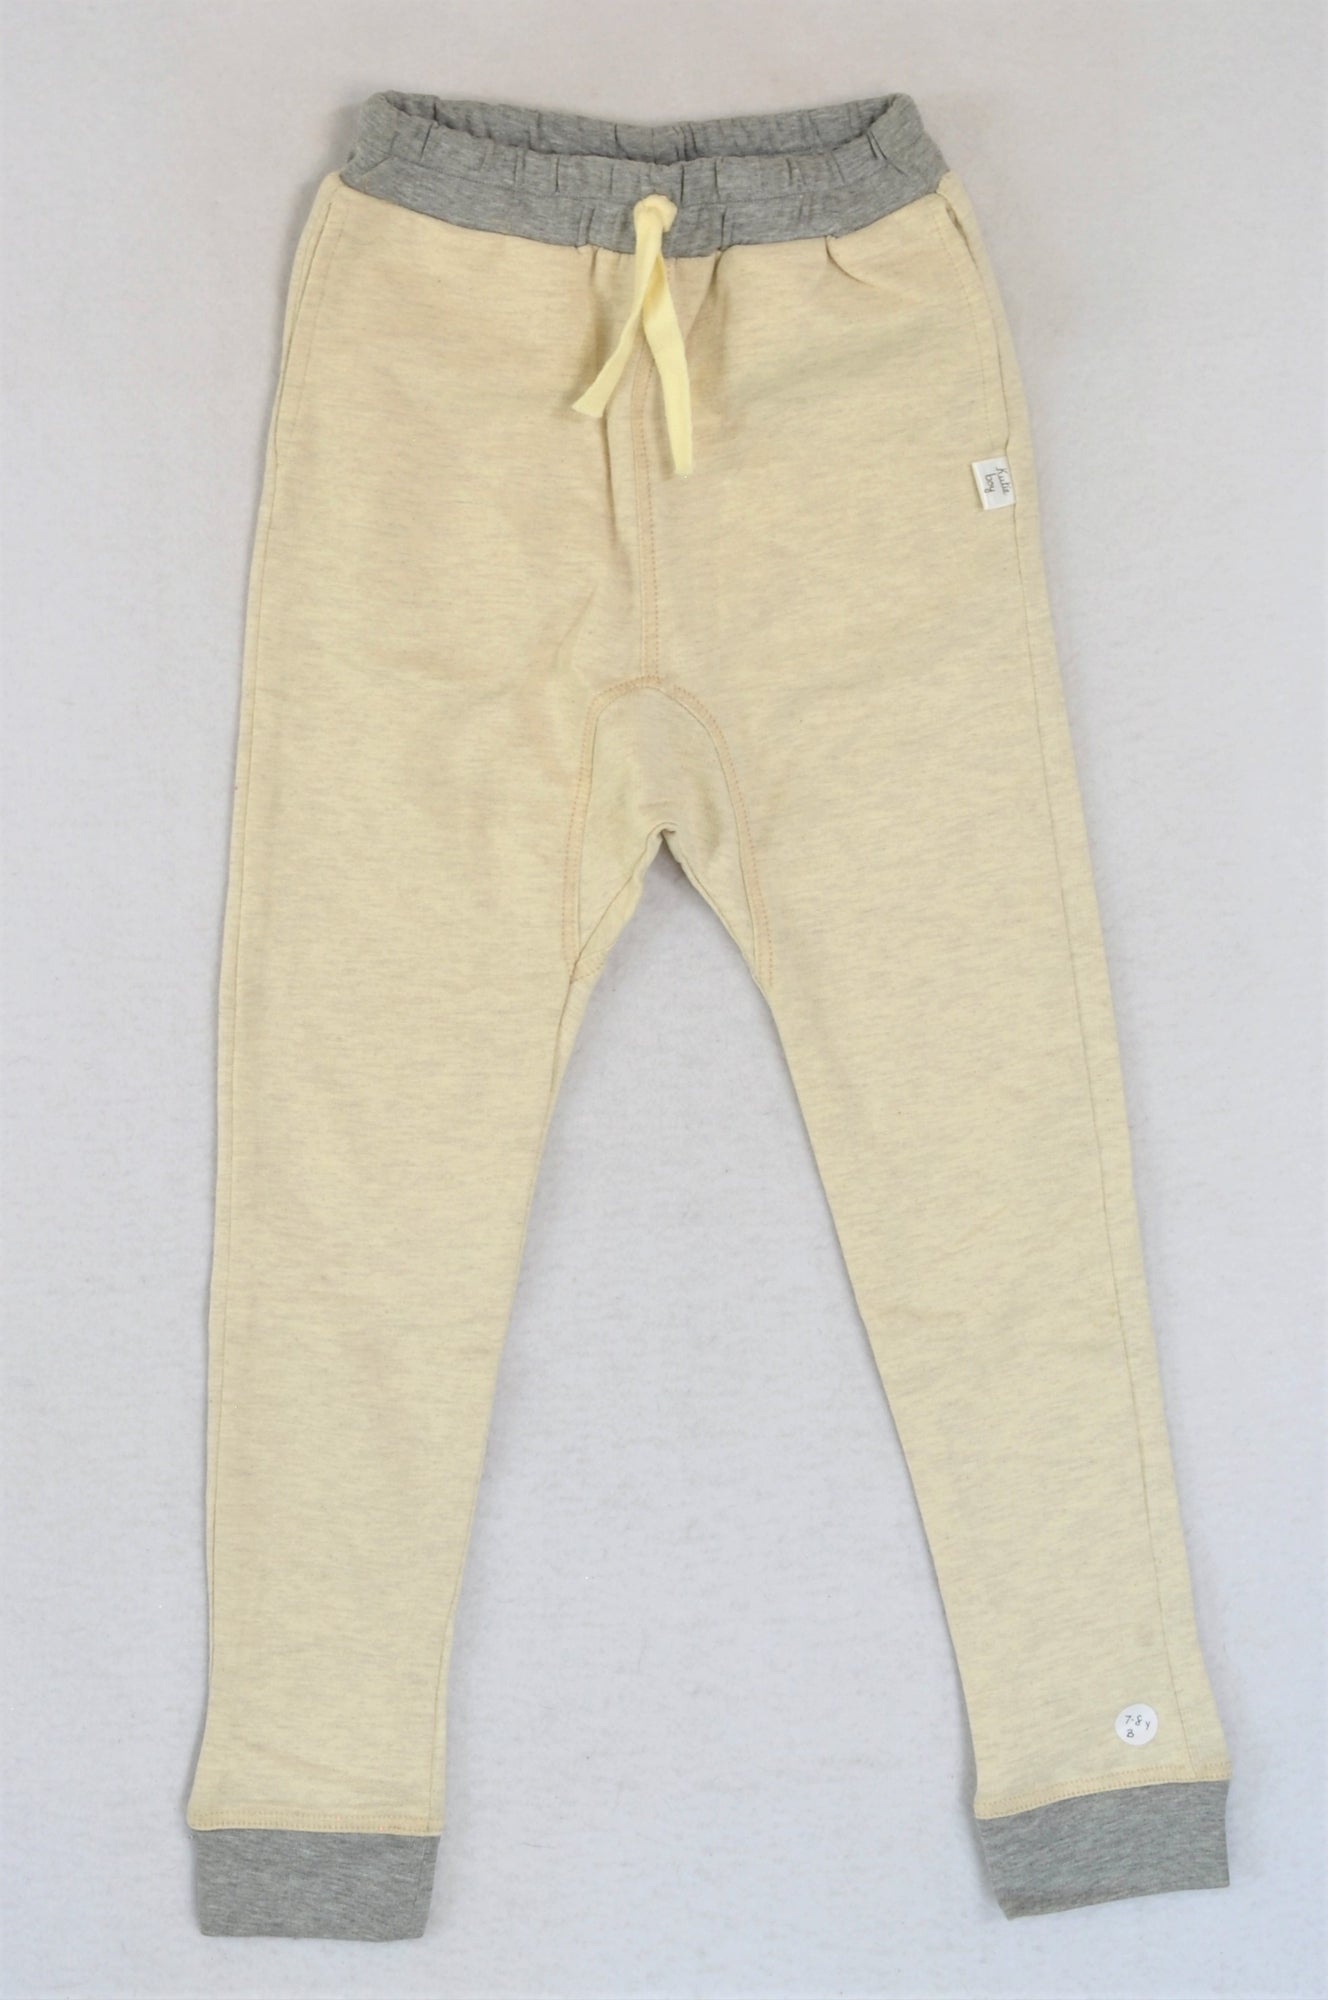 New Kutie Boy 100% Cotton Cream Jogger Track Pants Boys 7-8 years